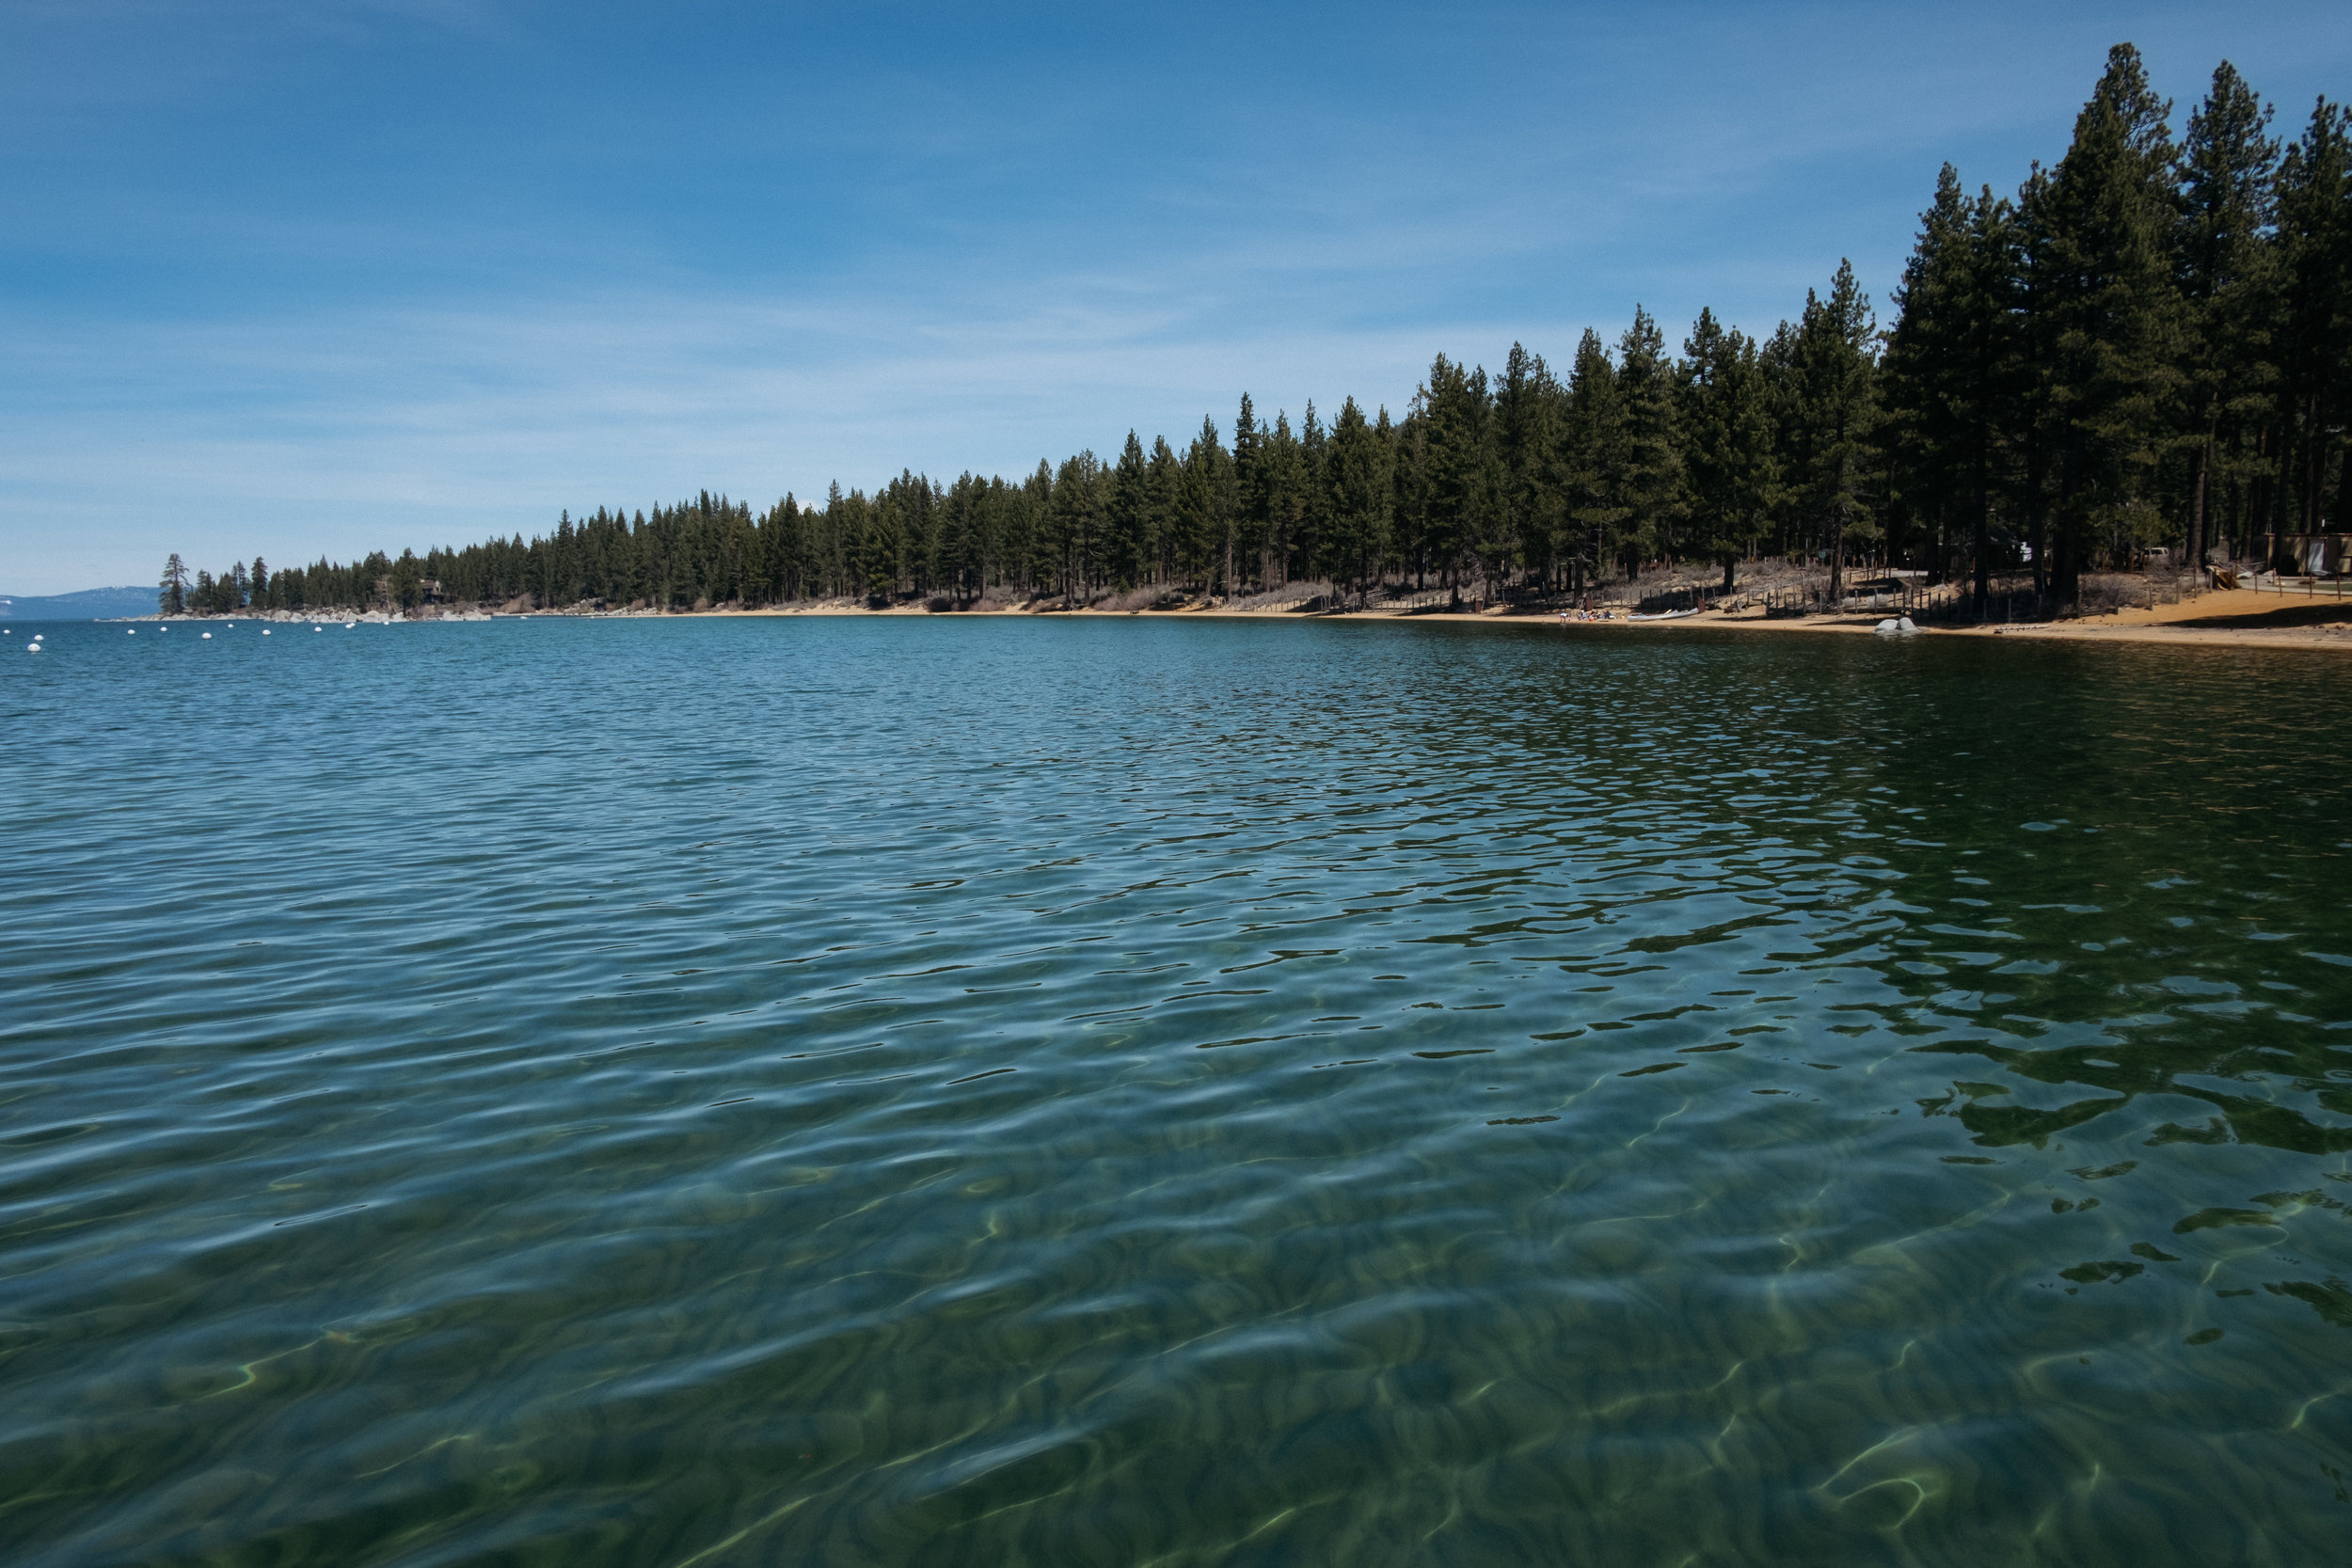 Trees lining Lake Tahoe shoreline